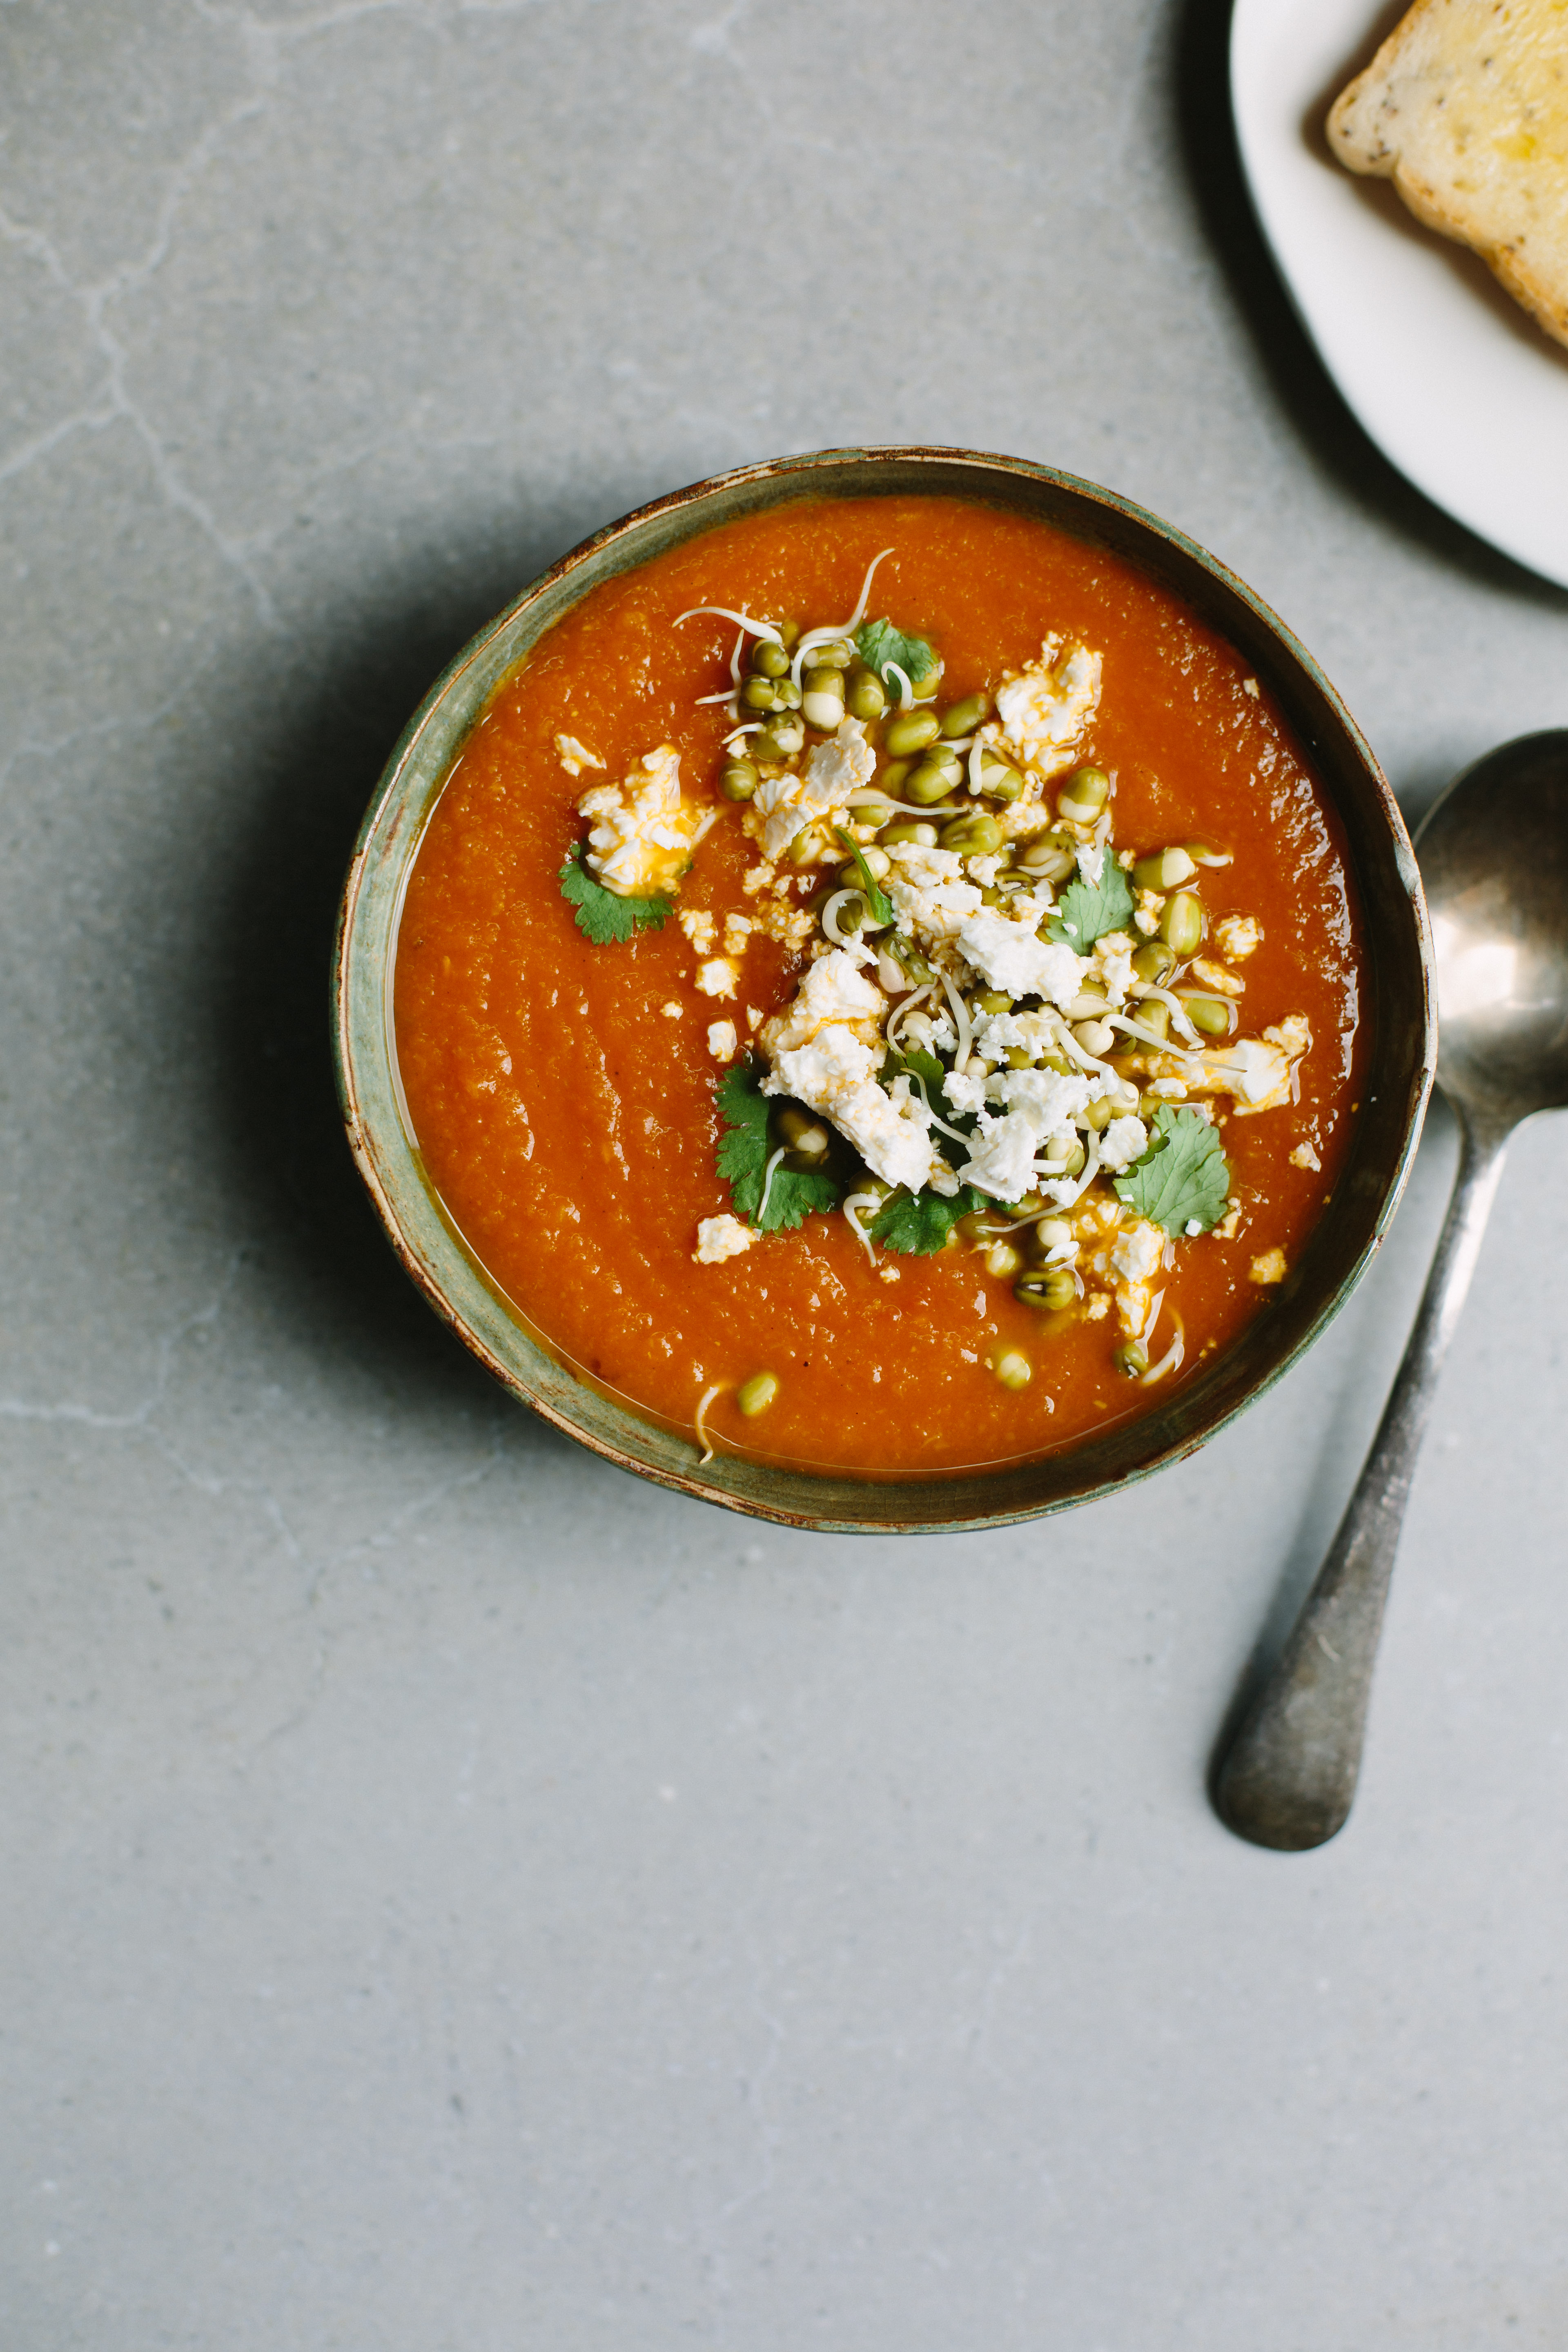 Curried carrot + red lentil soup with mung beans + feta | My Darling Lemon Thyme